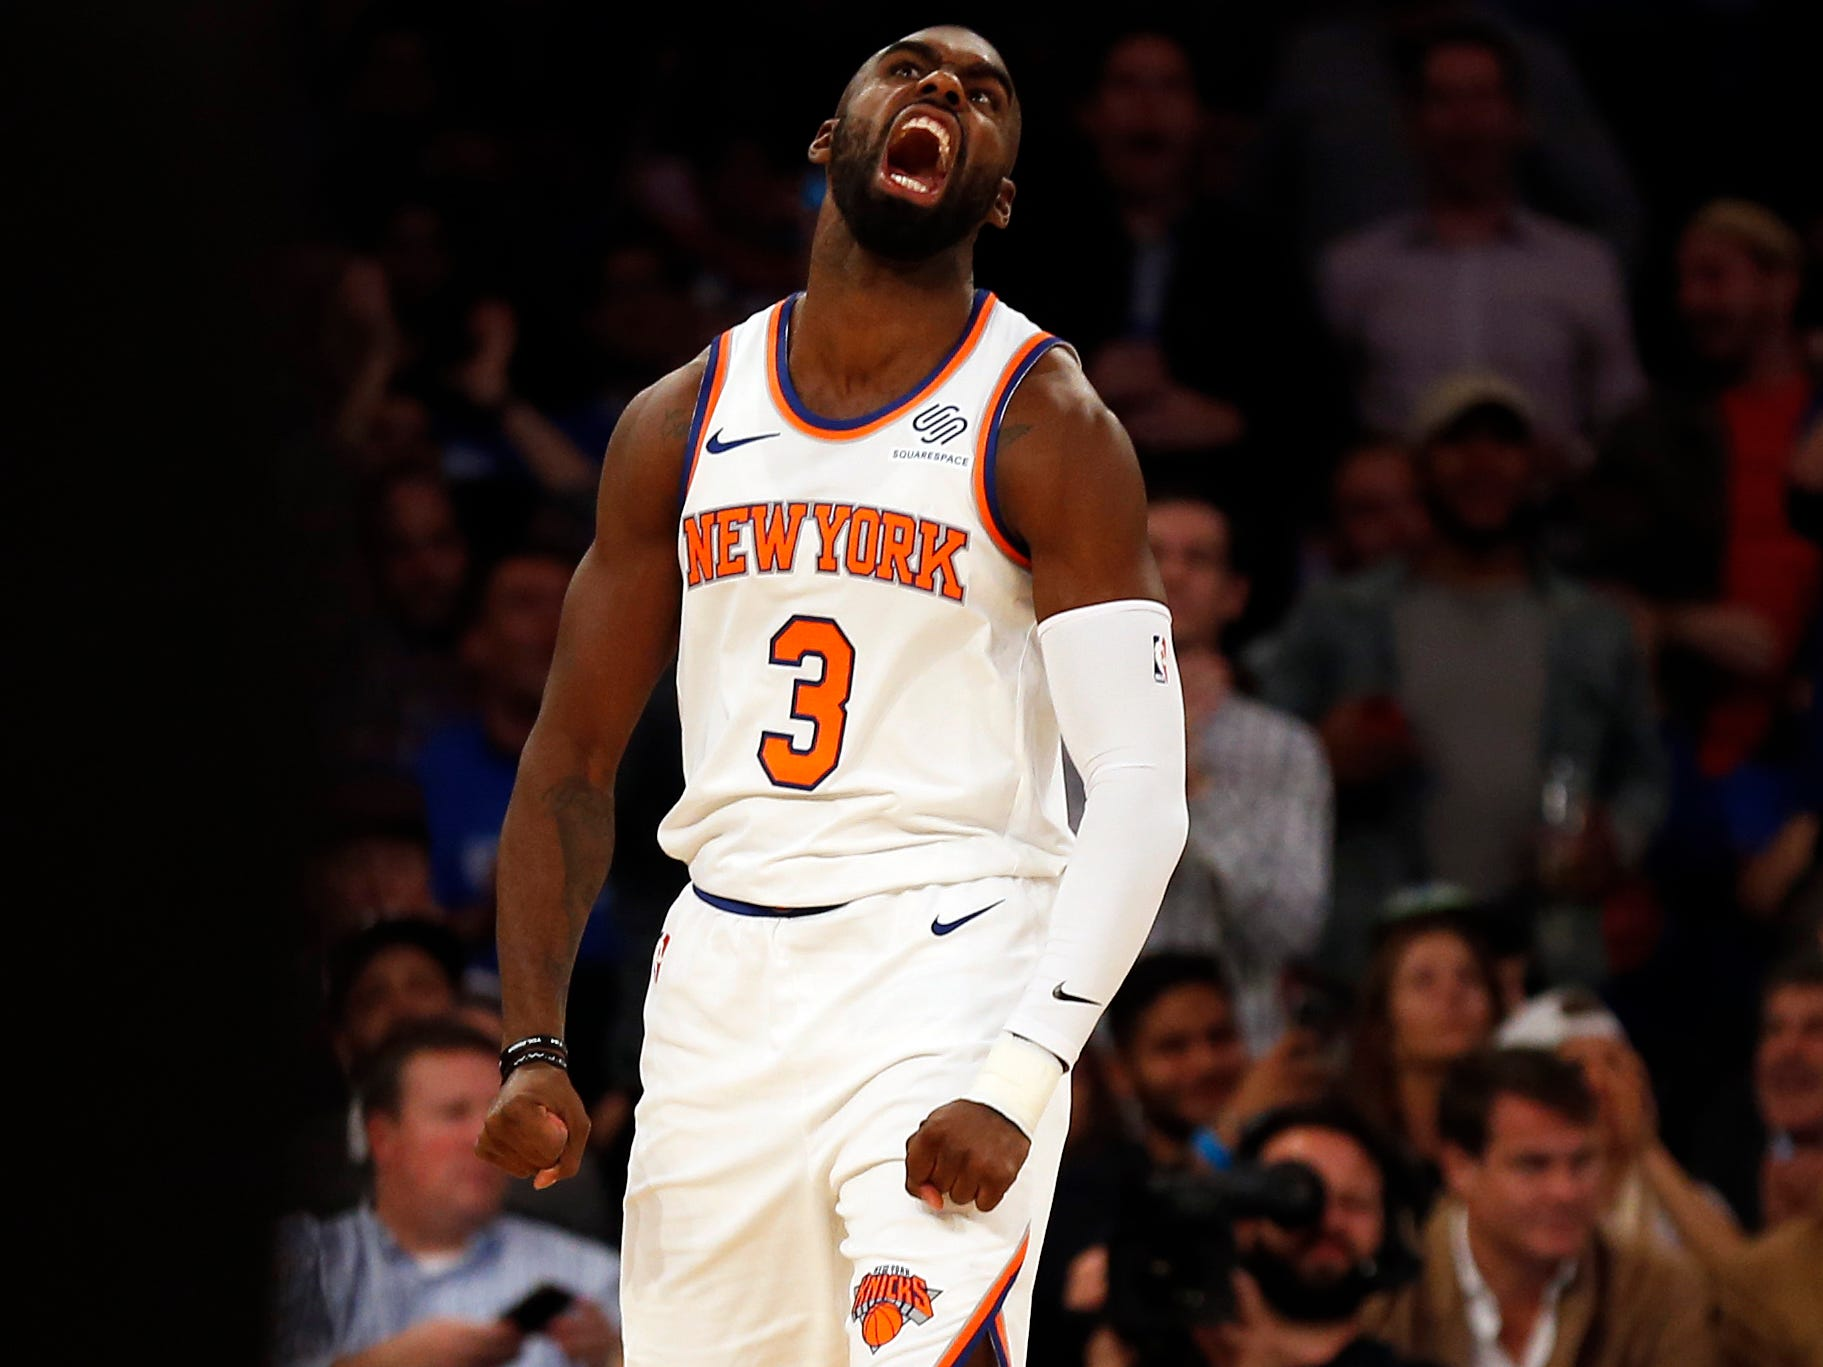 Oct. 17: New York Knicks guard Tim Hardaway Jr. reacts after dunking the ball against the Atlanta Hawks during the first half at Madison Square Garden.